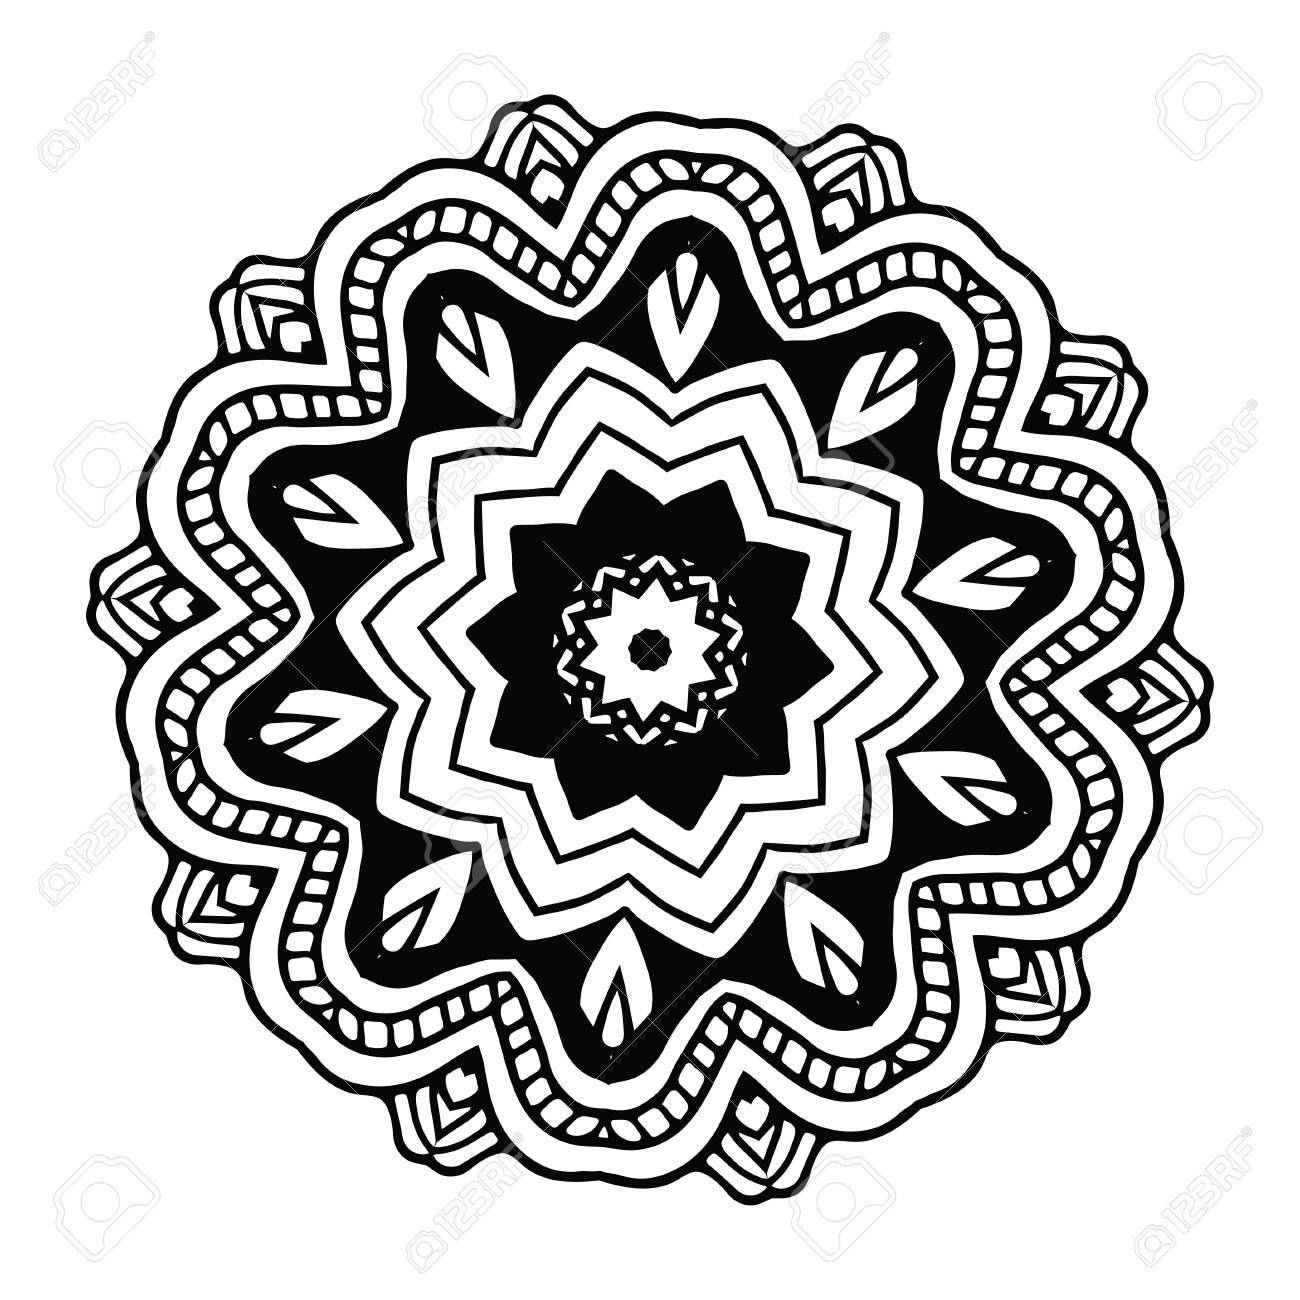 Abstract Design Black White Element Round Mandala In Vector